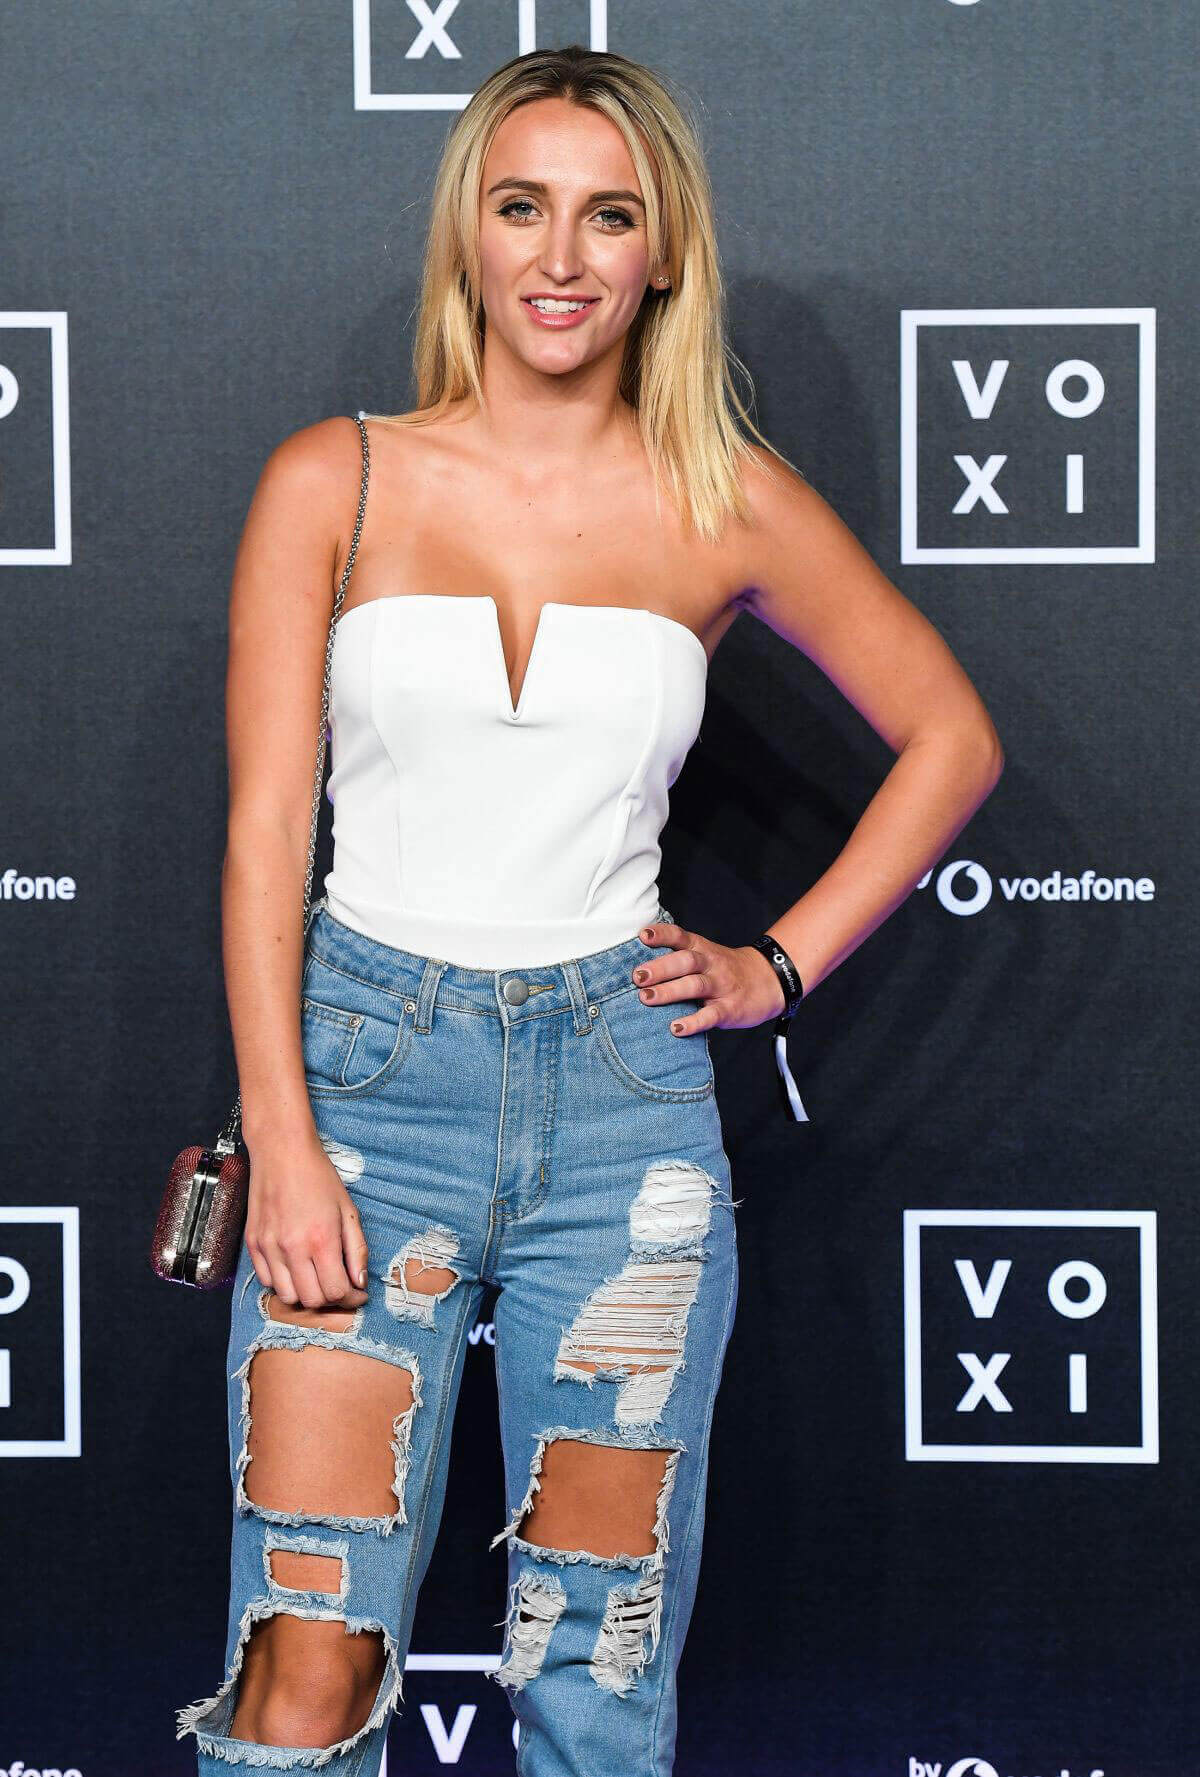 Tiffany Watson wears ripped jeans at Voxi Launch Party in London